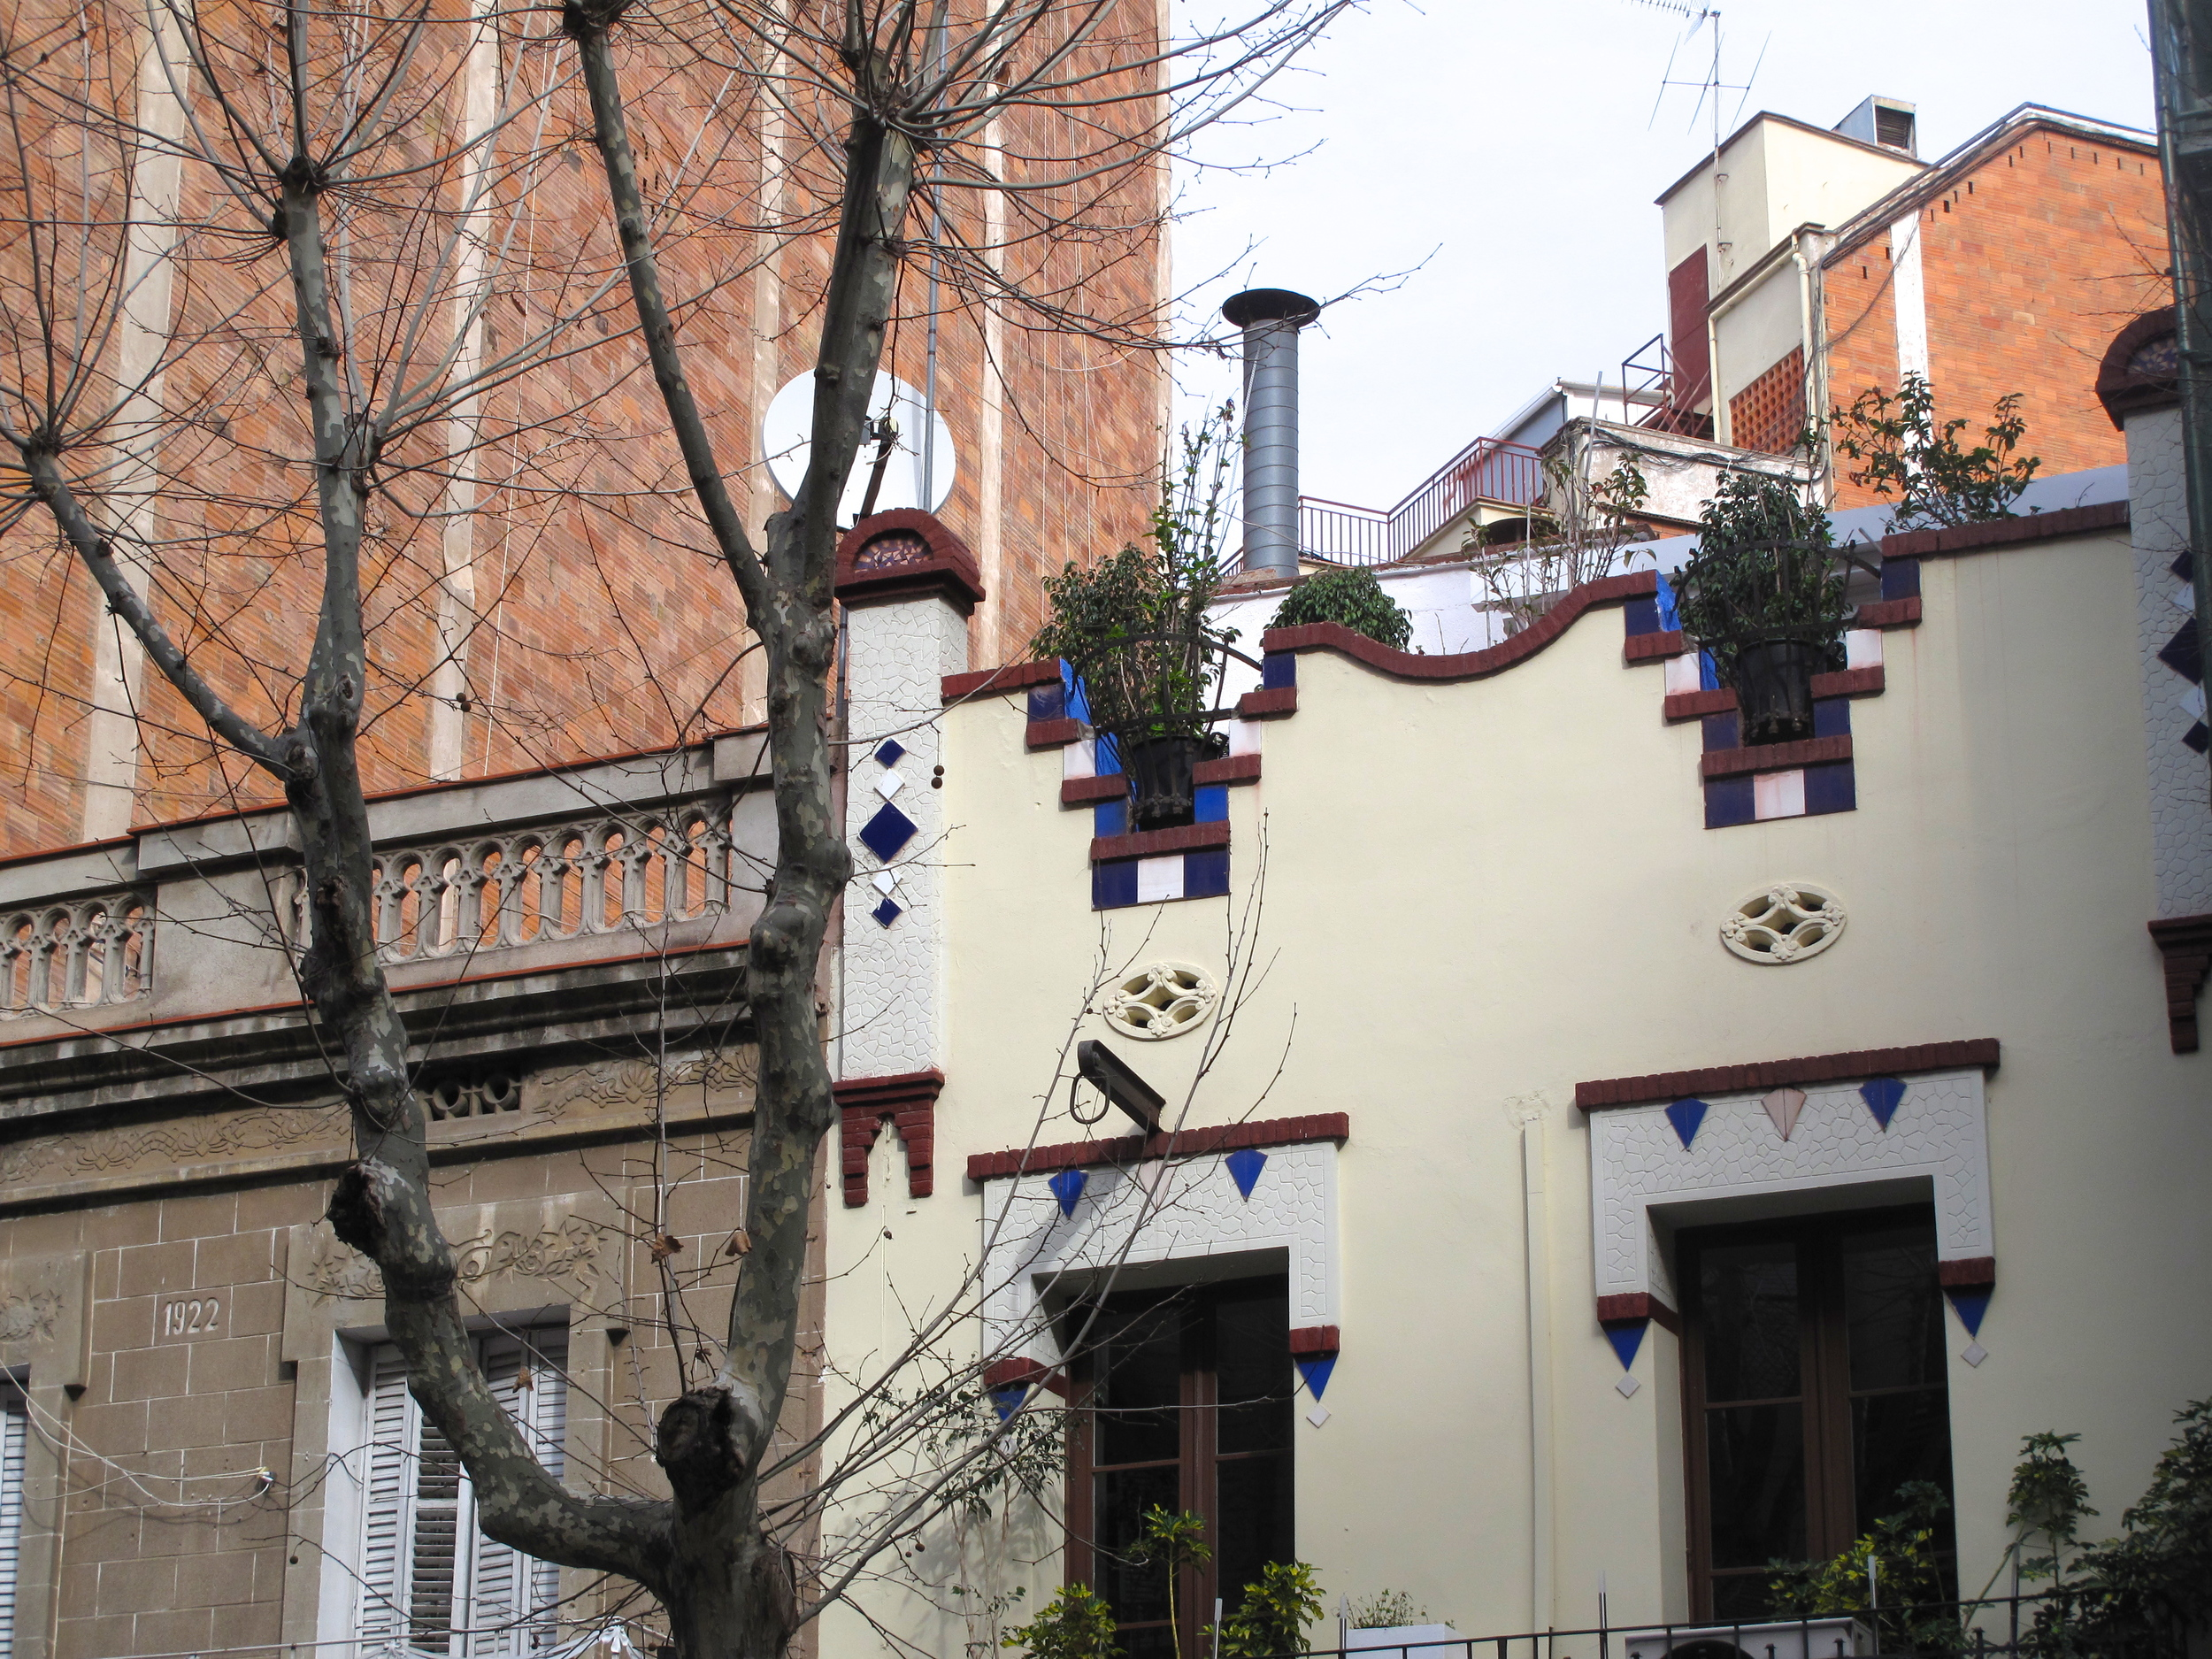 Architecture and housing in Barcelona - a painted house with a parapet.